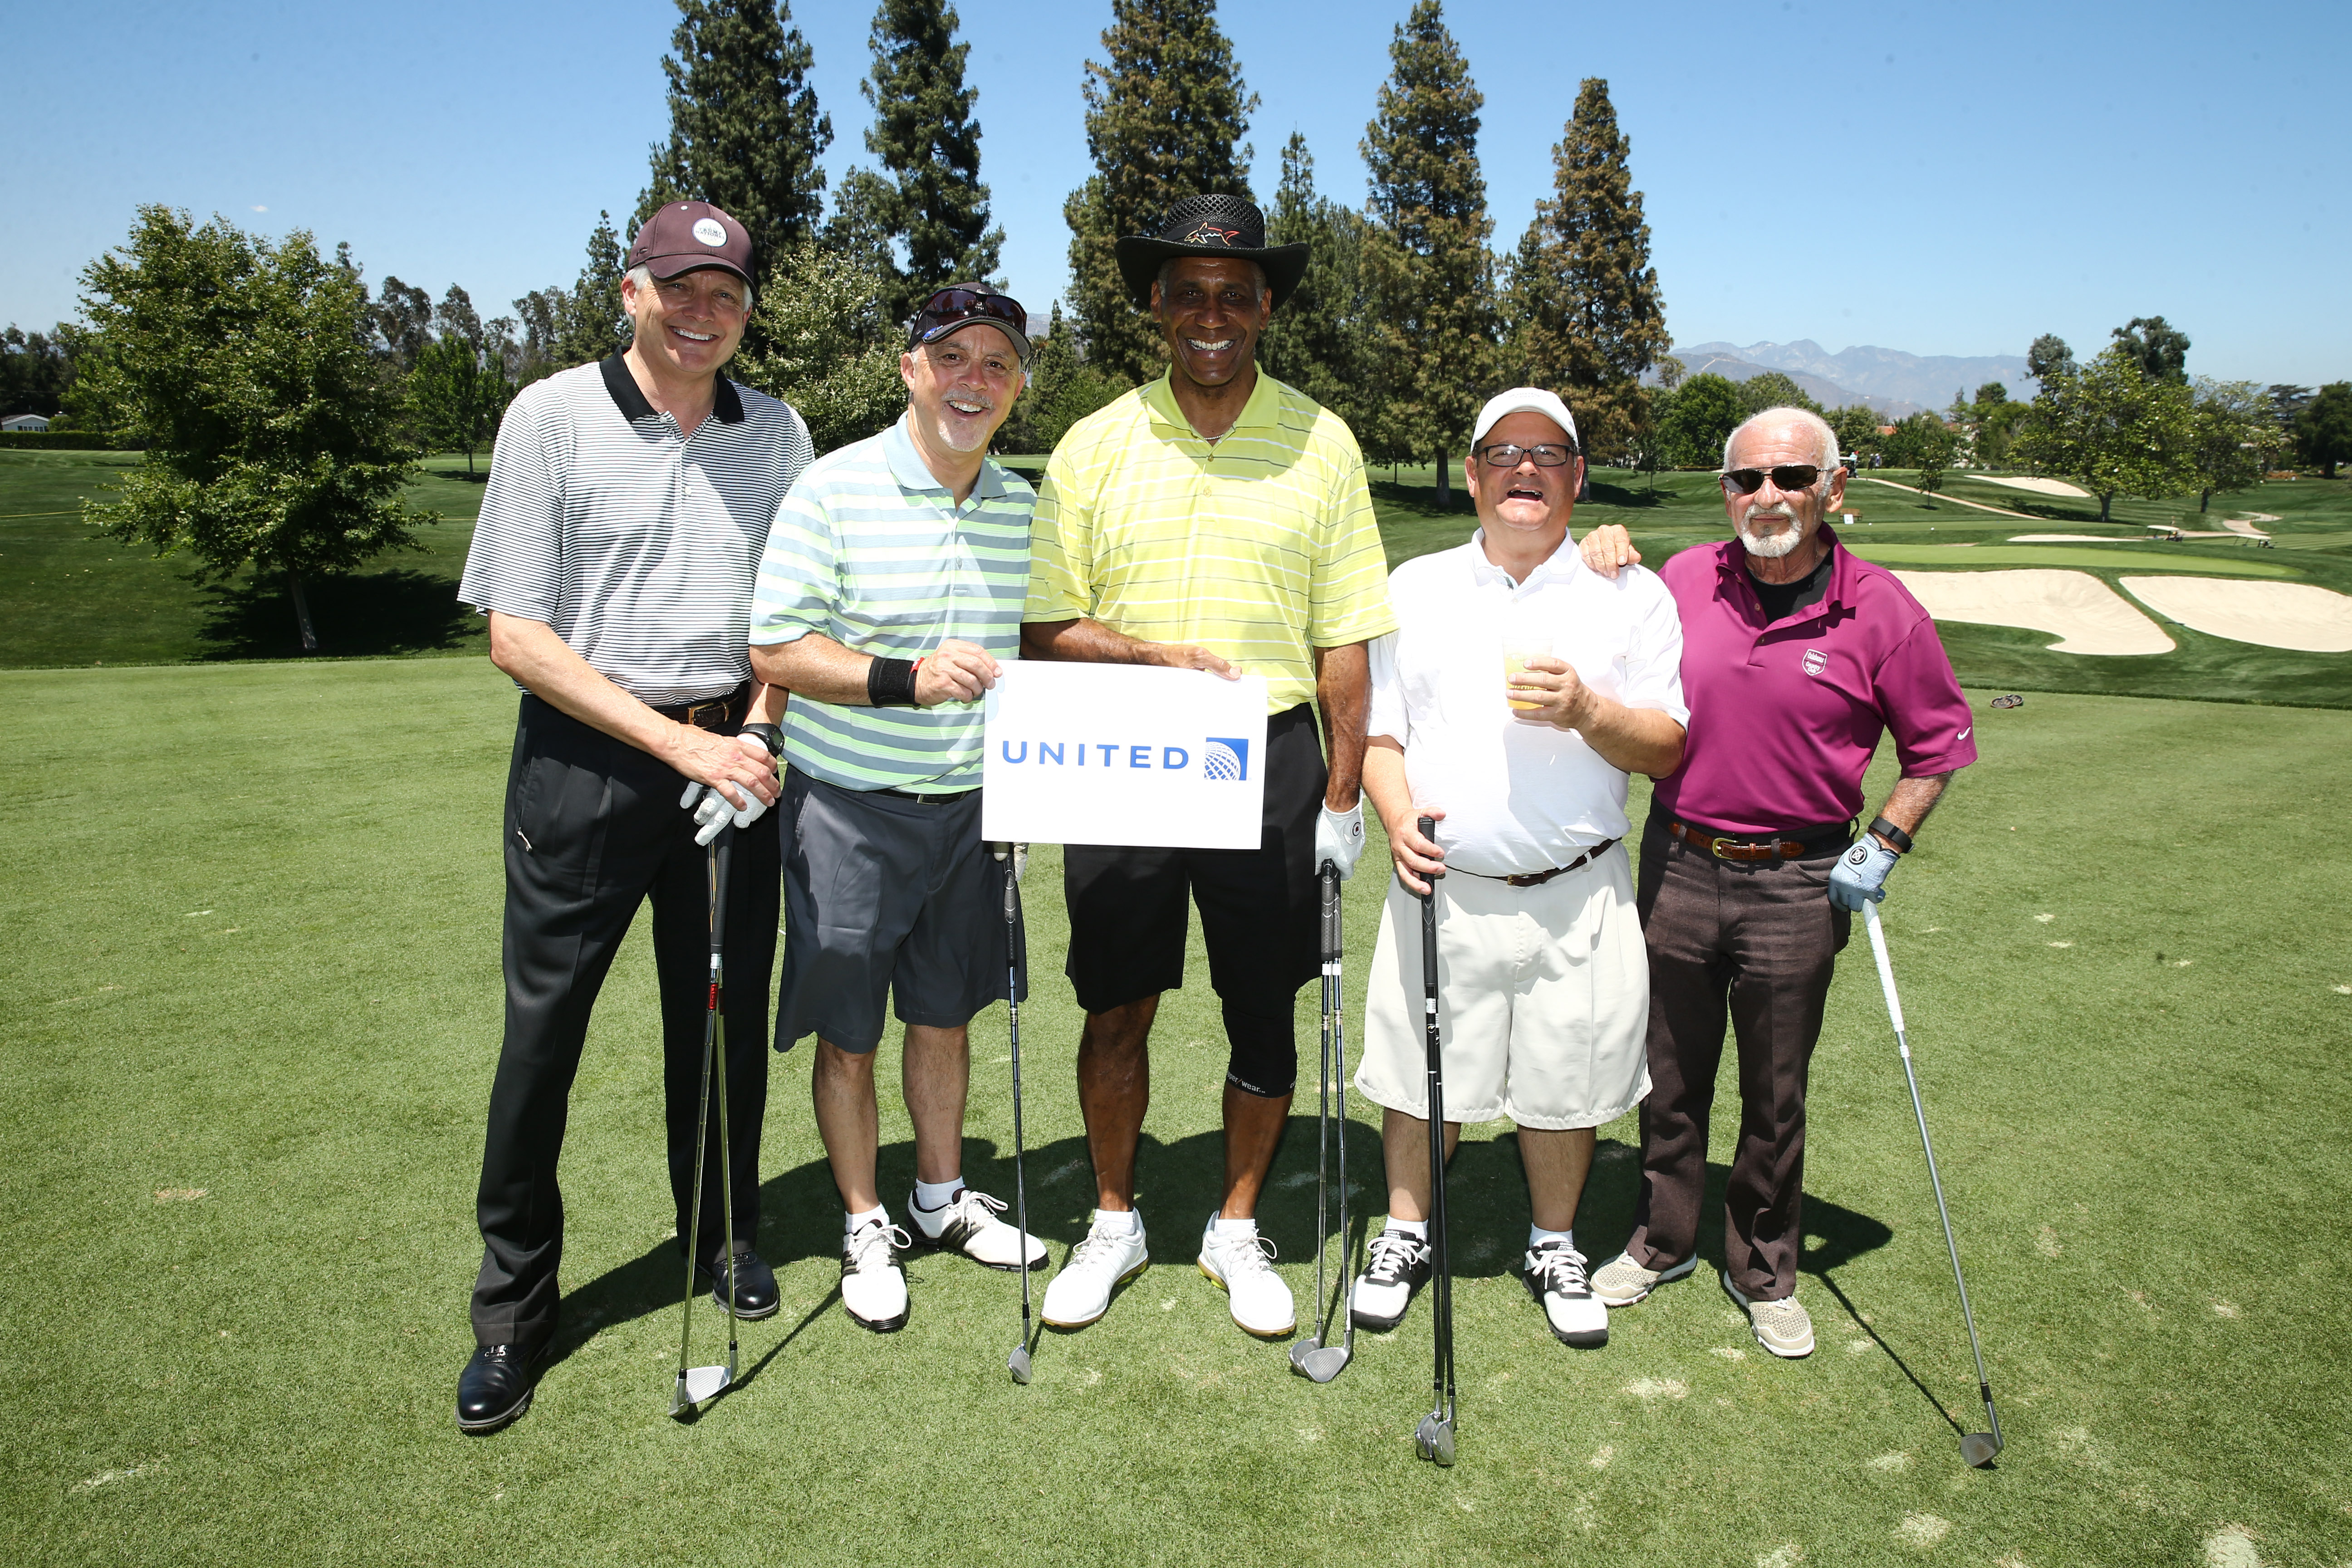 Robert French, Tom Devany, Reggie McDowell, Gary Meek, and Joe Pesci of Team United play at the Screen Actors Guild Foundation's 6th Annual Los Angeles Golf Classic on June 8, 2015 in Burbank, California. (Photo by Mark Davis/Getty Images for The Screen Actors Guild Foundation)